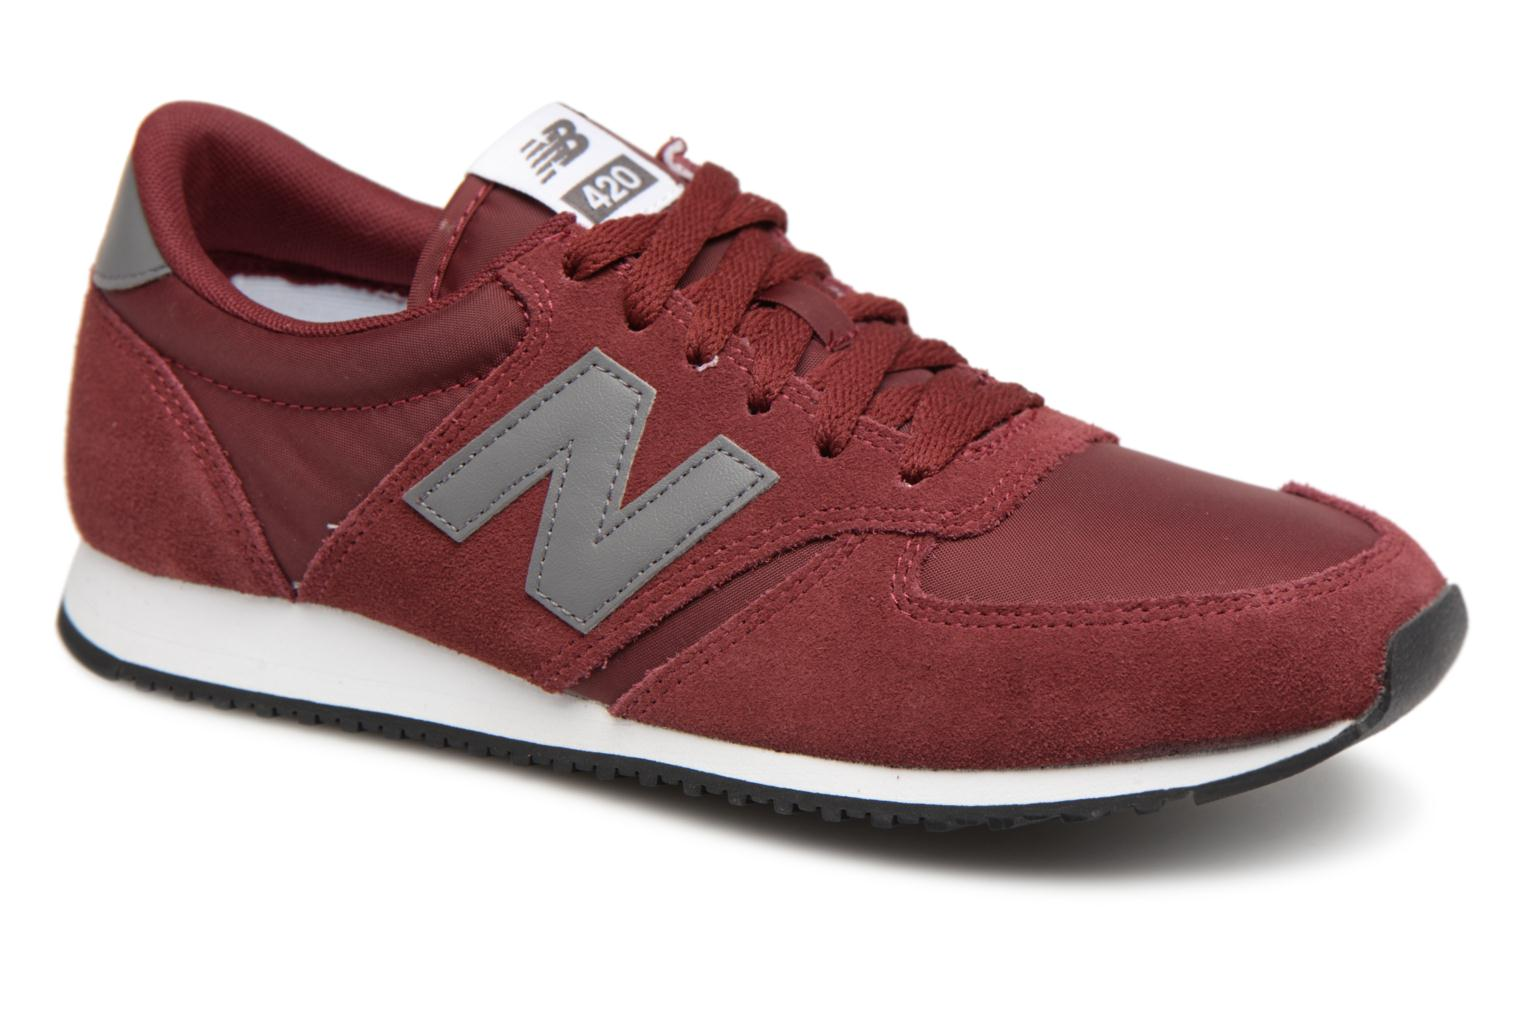 low priced 36234 2d4e1 Baskets New Balance U420 Bordeaux vue détail paire